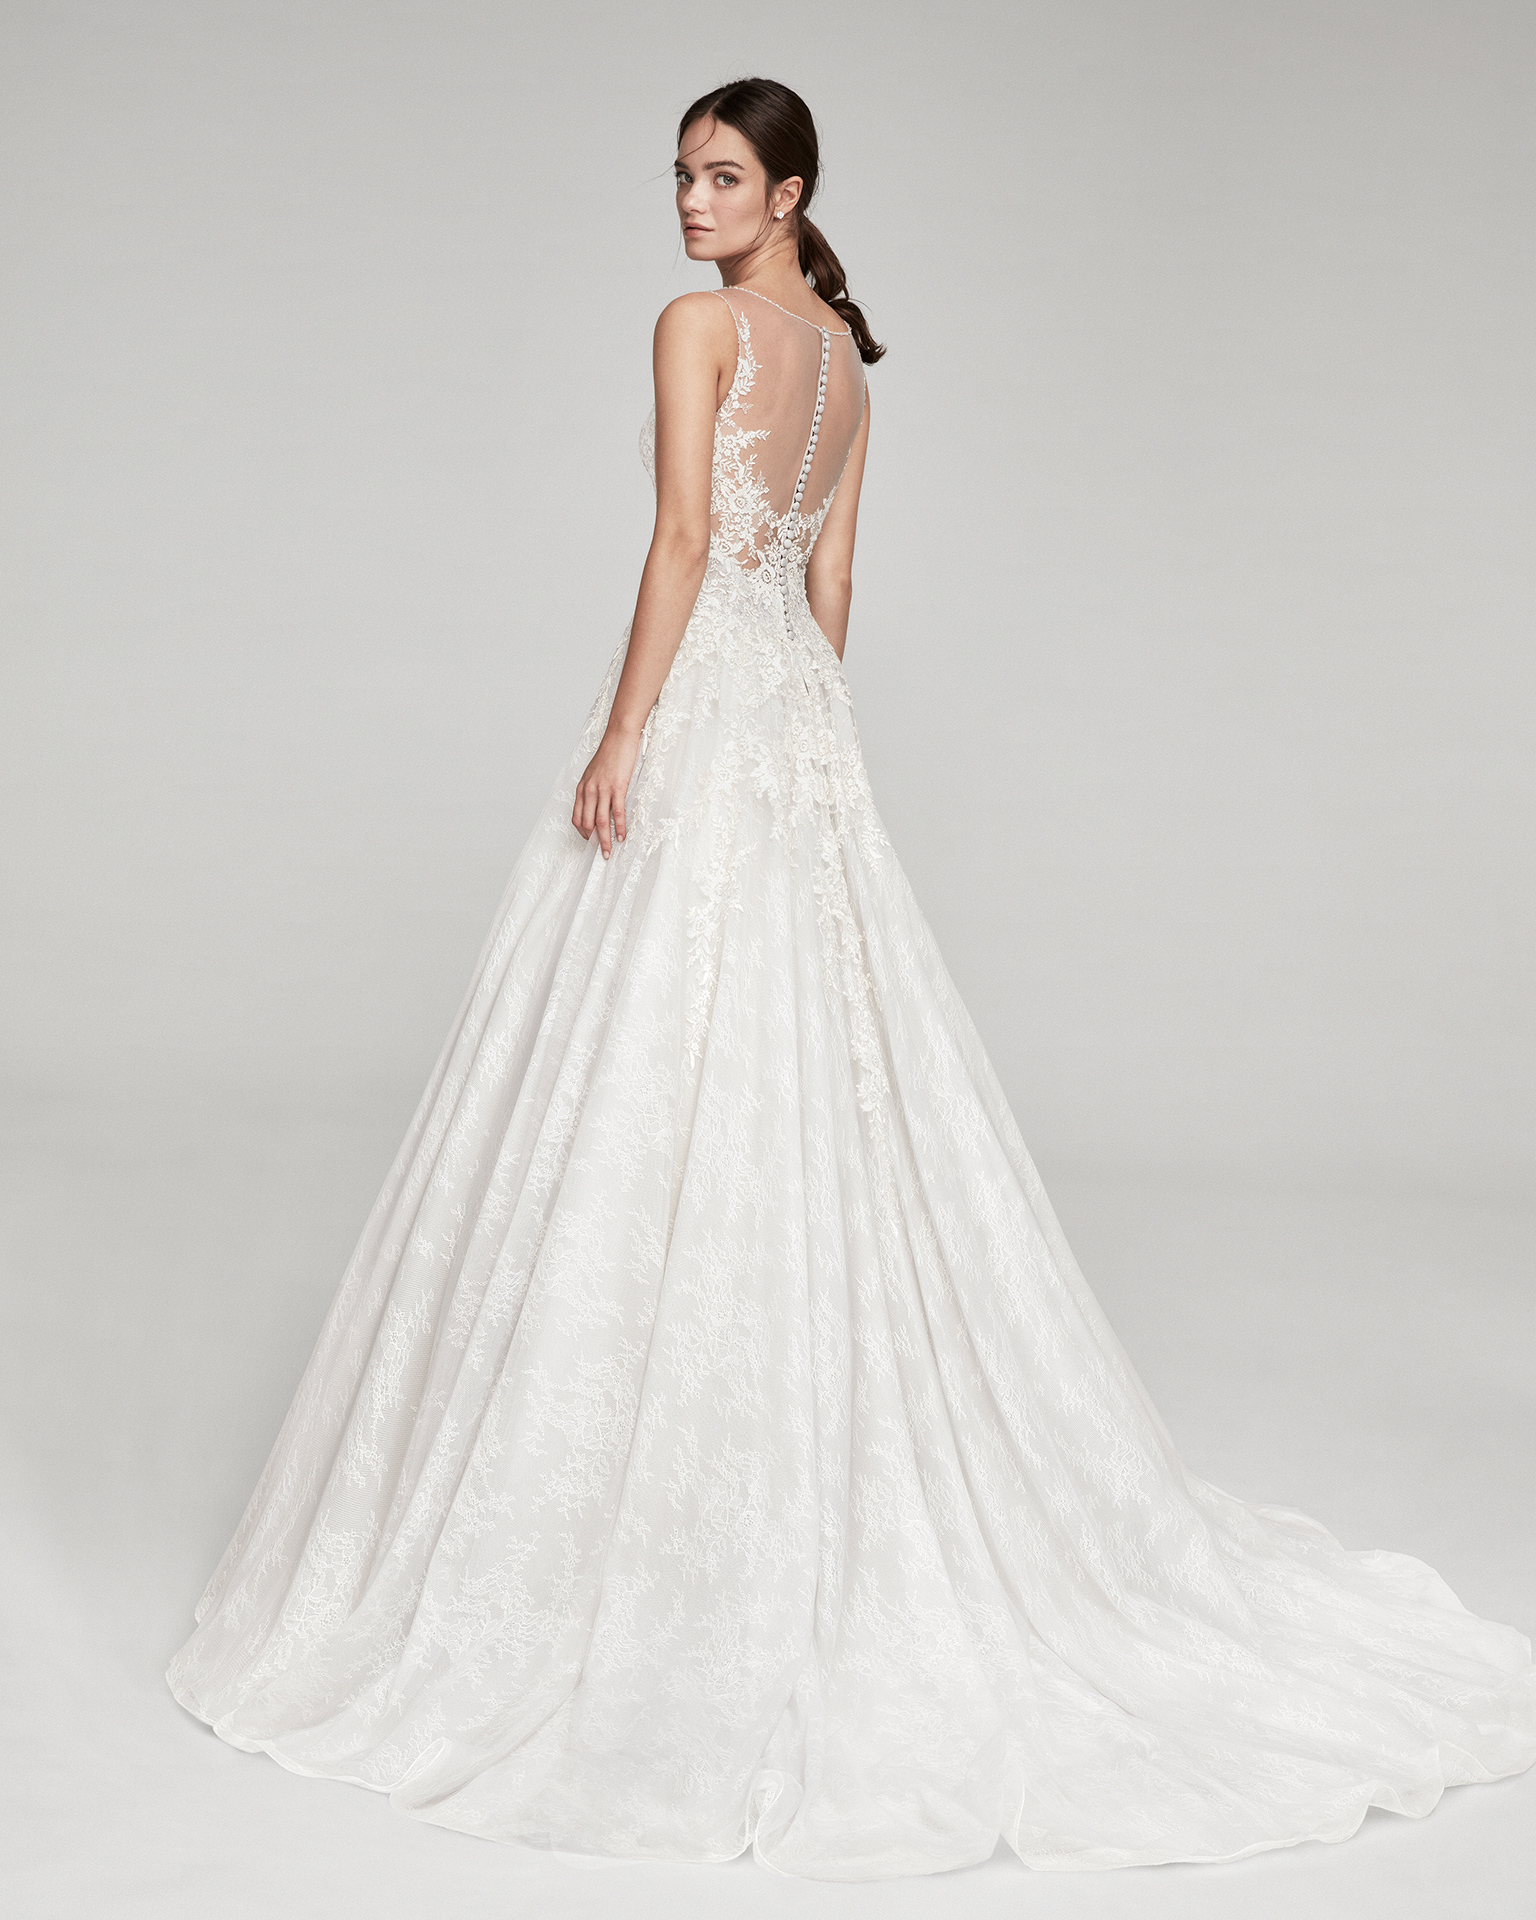 Romantic lace wedding dress. With V-neckline and tulle back. Available in ice and natural. 2019 ALMA_NOVIA Collection.